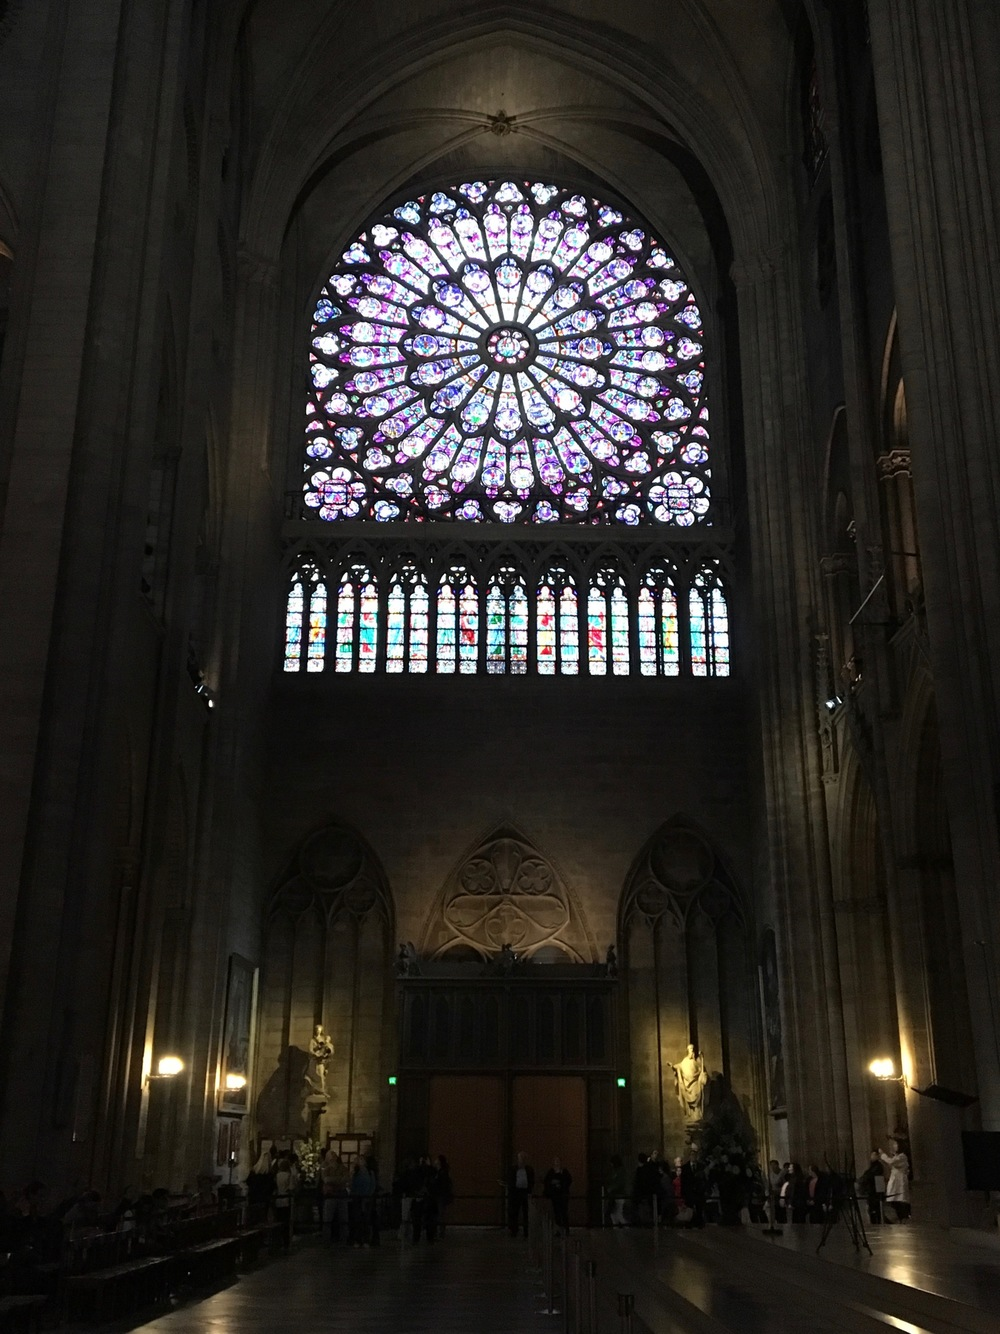 One of the two rose windows of Notre Dame